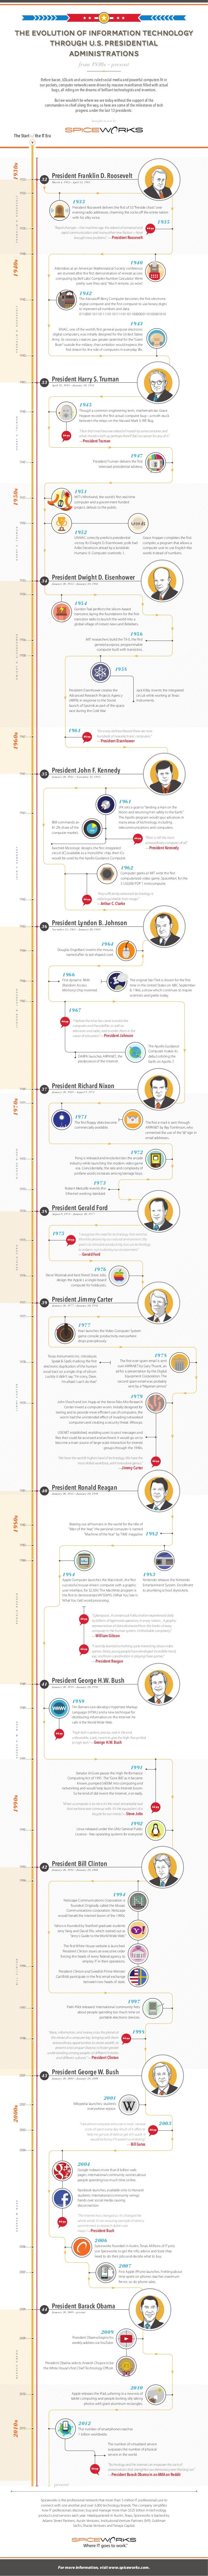 US Presidents and the Evolution of Technology